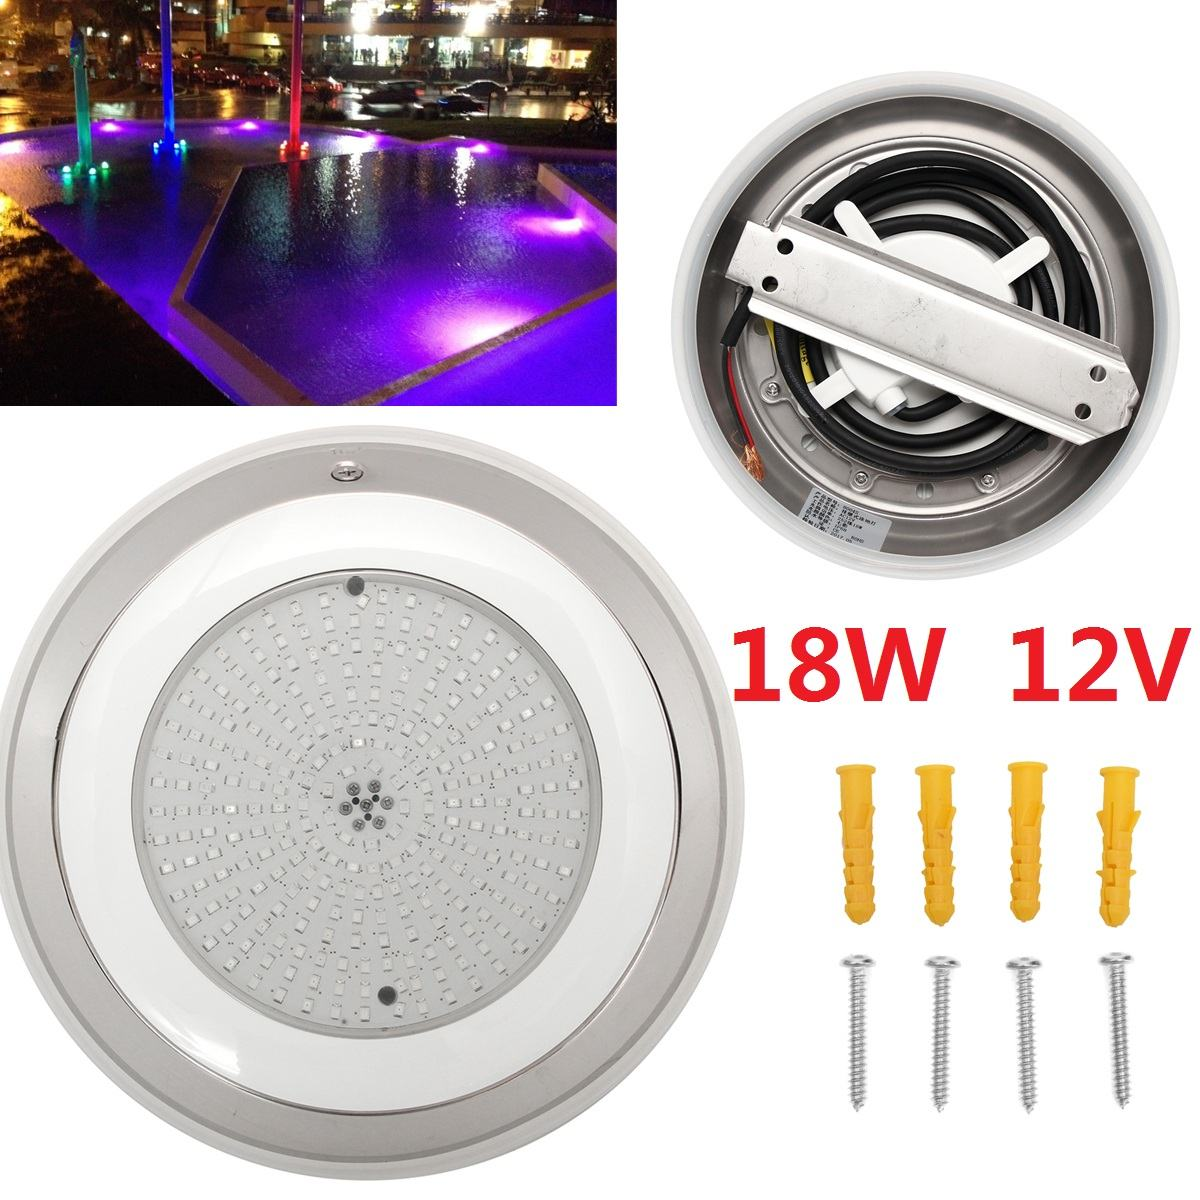 12V 252 LED 18W Led Swimming Pool Light with cable Stainess Multi-Color aterproof Underwater Lamp Outdoor Lighting12V 252 LED 18W Led Swimming Pool Light with cable Stainess Multi-Color aterproof Underwater Lamp Outdoor Lighting